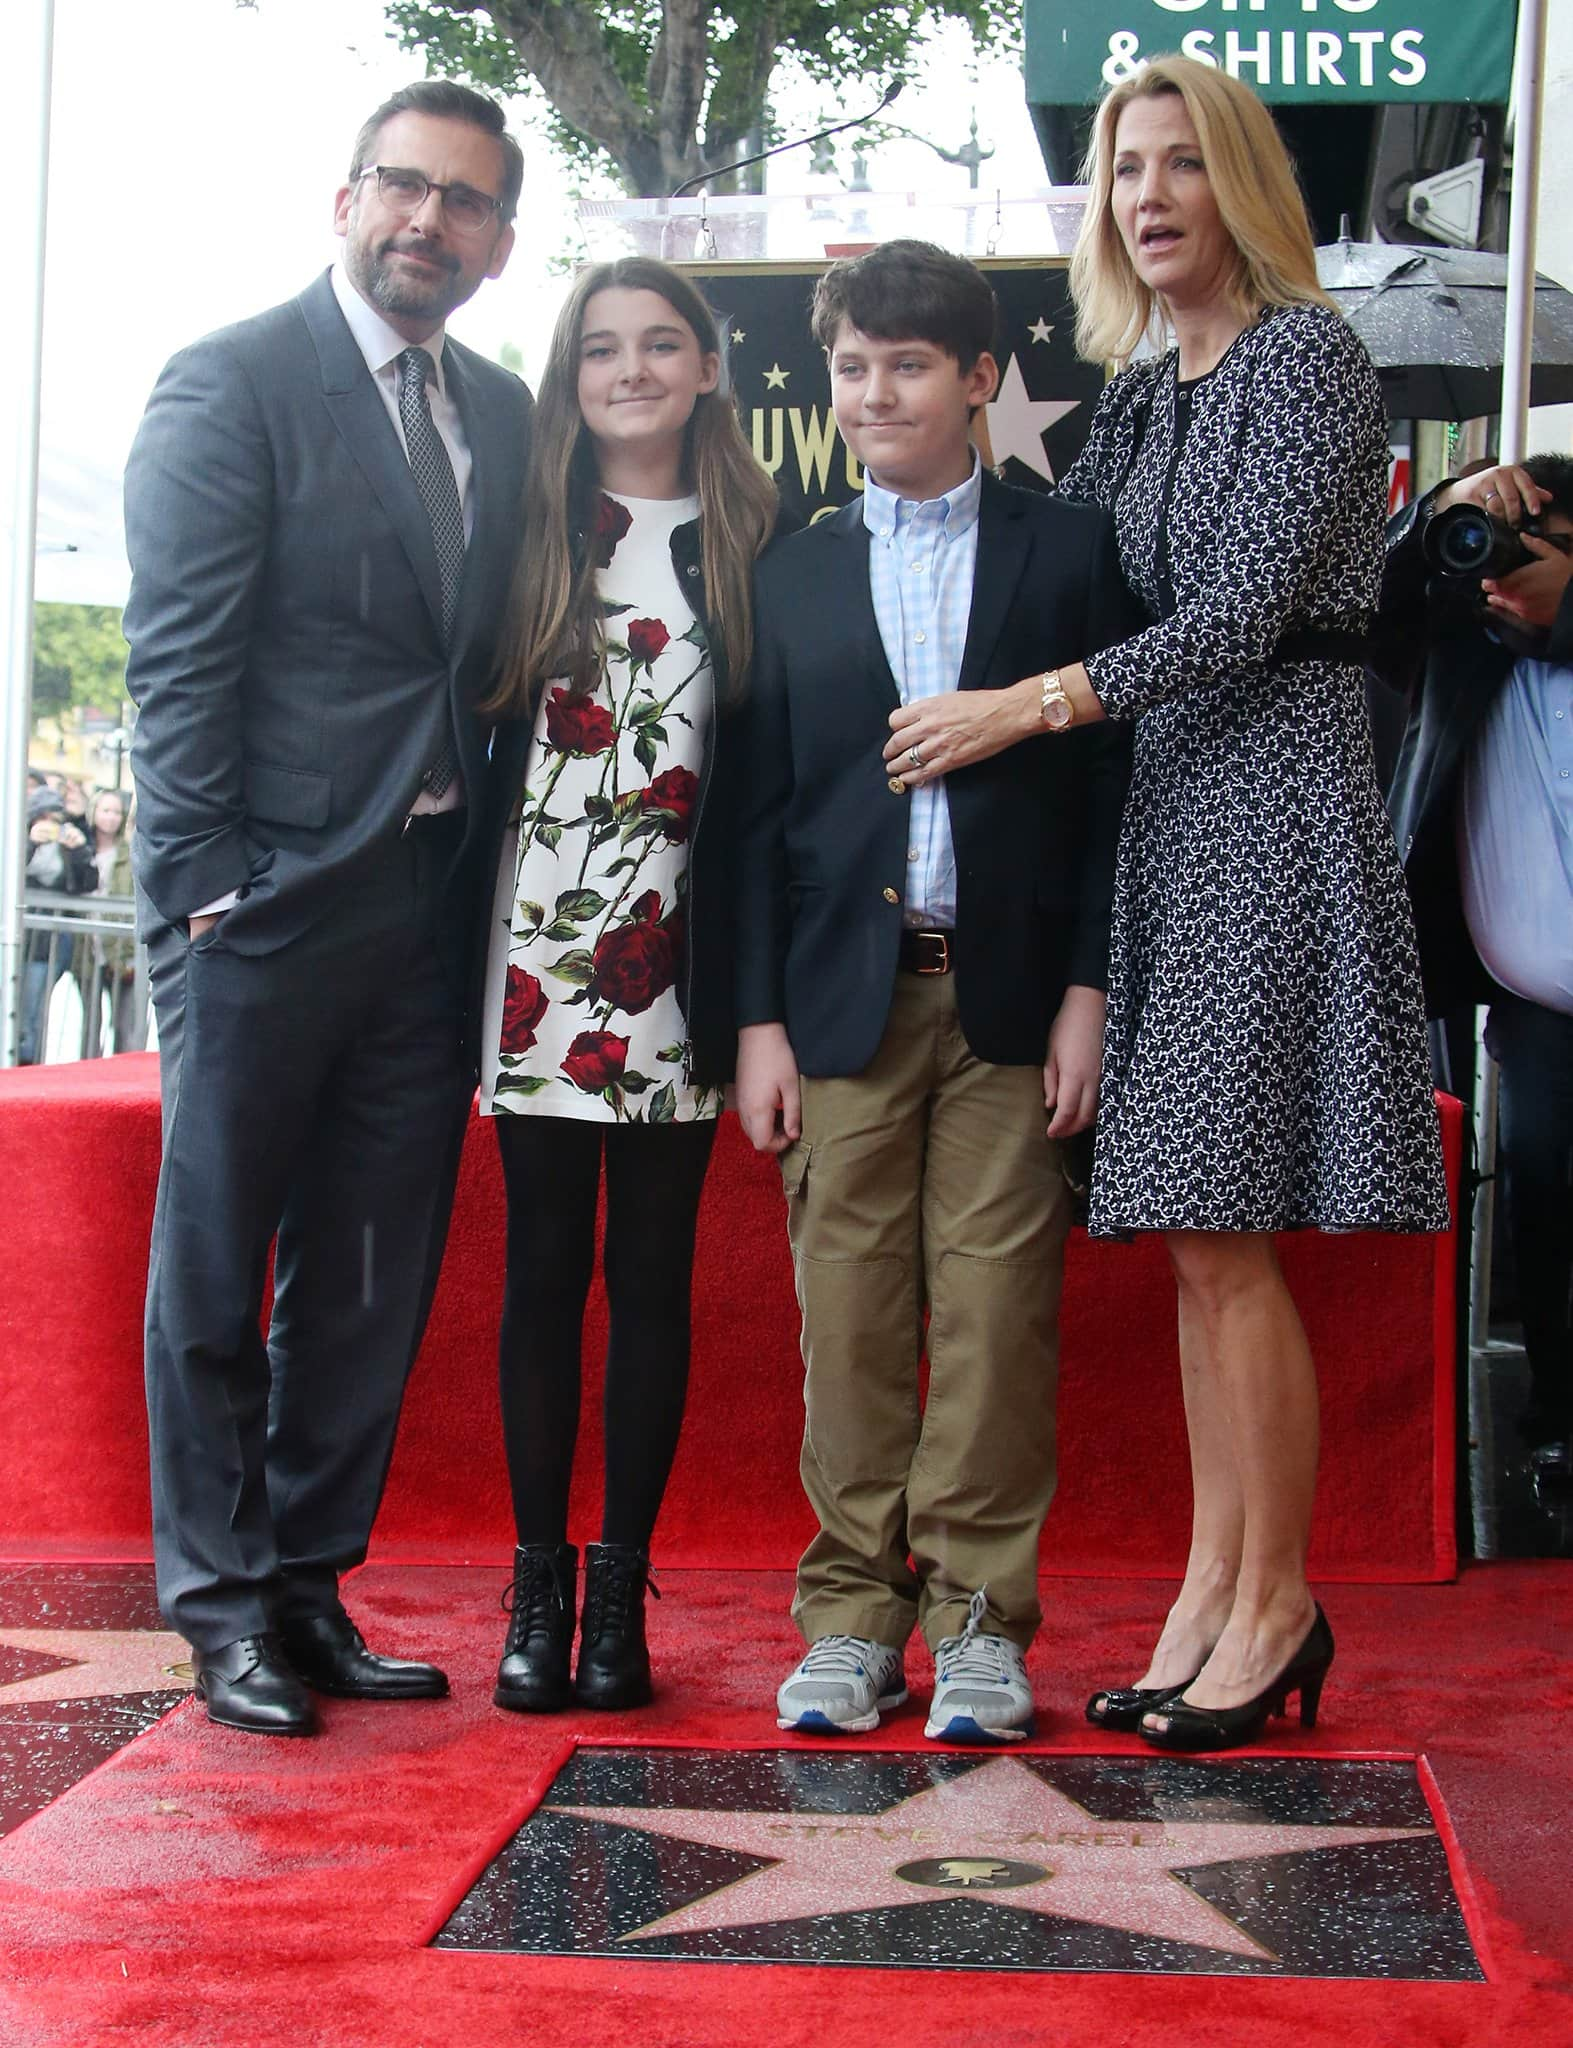 Steve Carell receives Hollywood Walk of Fame star with his kids Elisabeth Anne Carell and John Carell and wife Nancy Carell on January 6, 2016